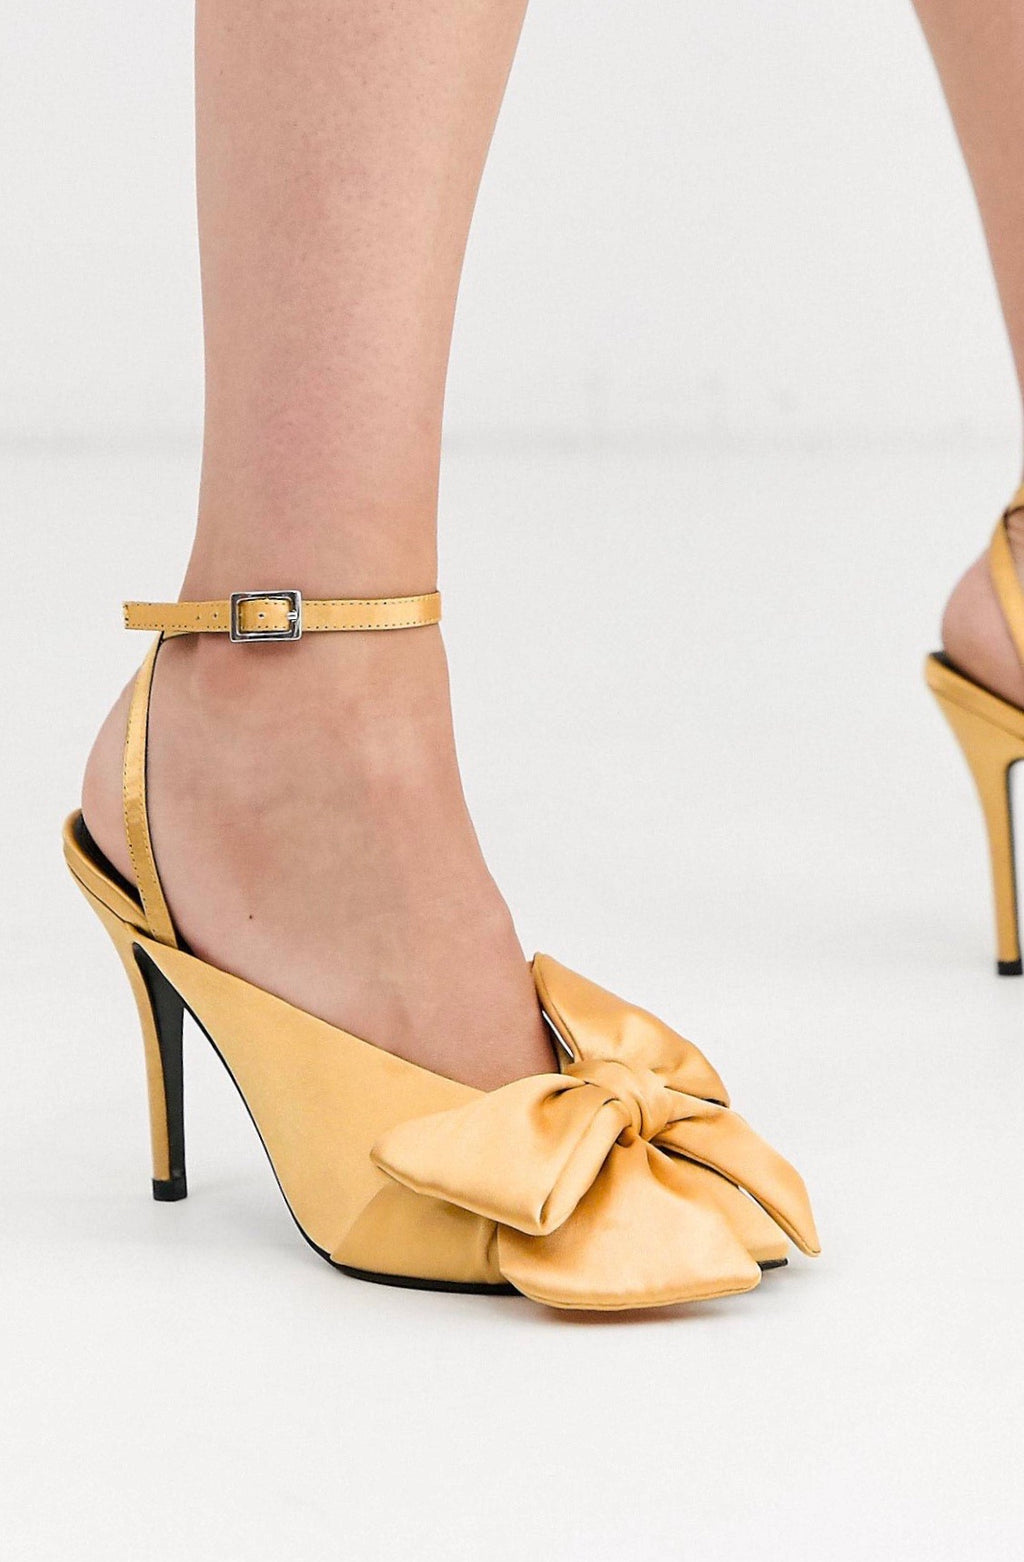 POETRY POINTED HIGH HEEL MULES WITH BOW